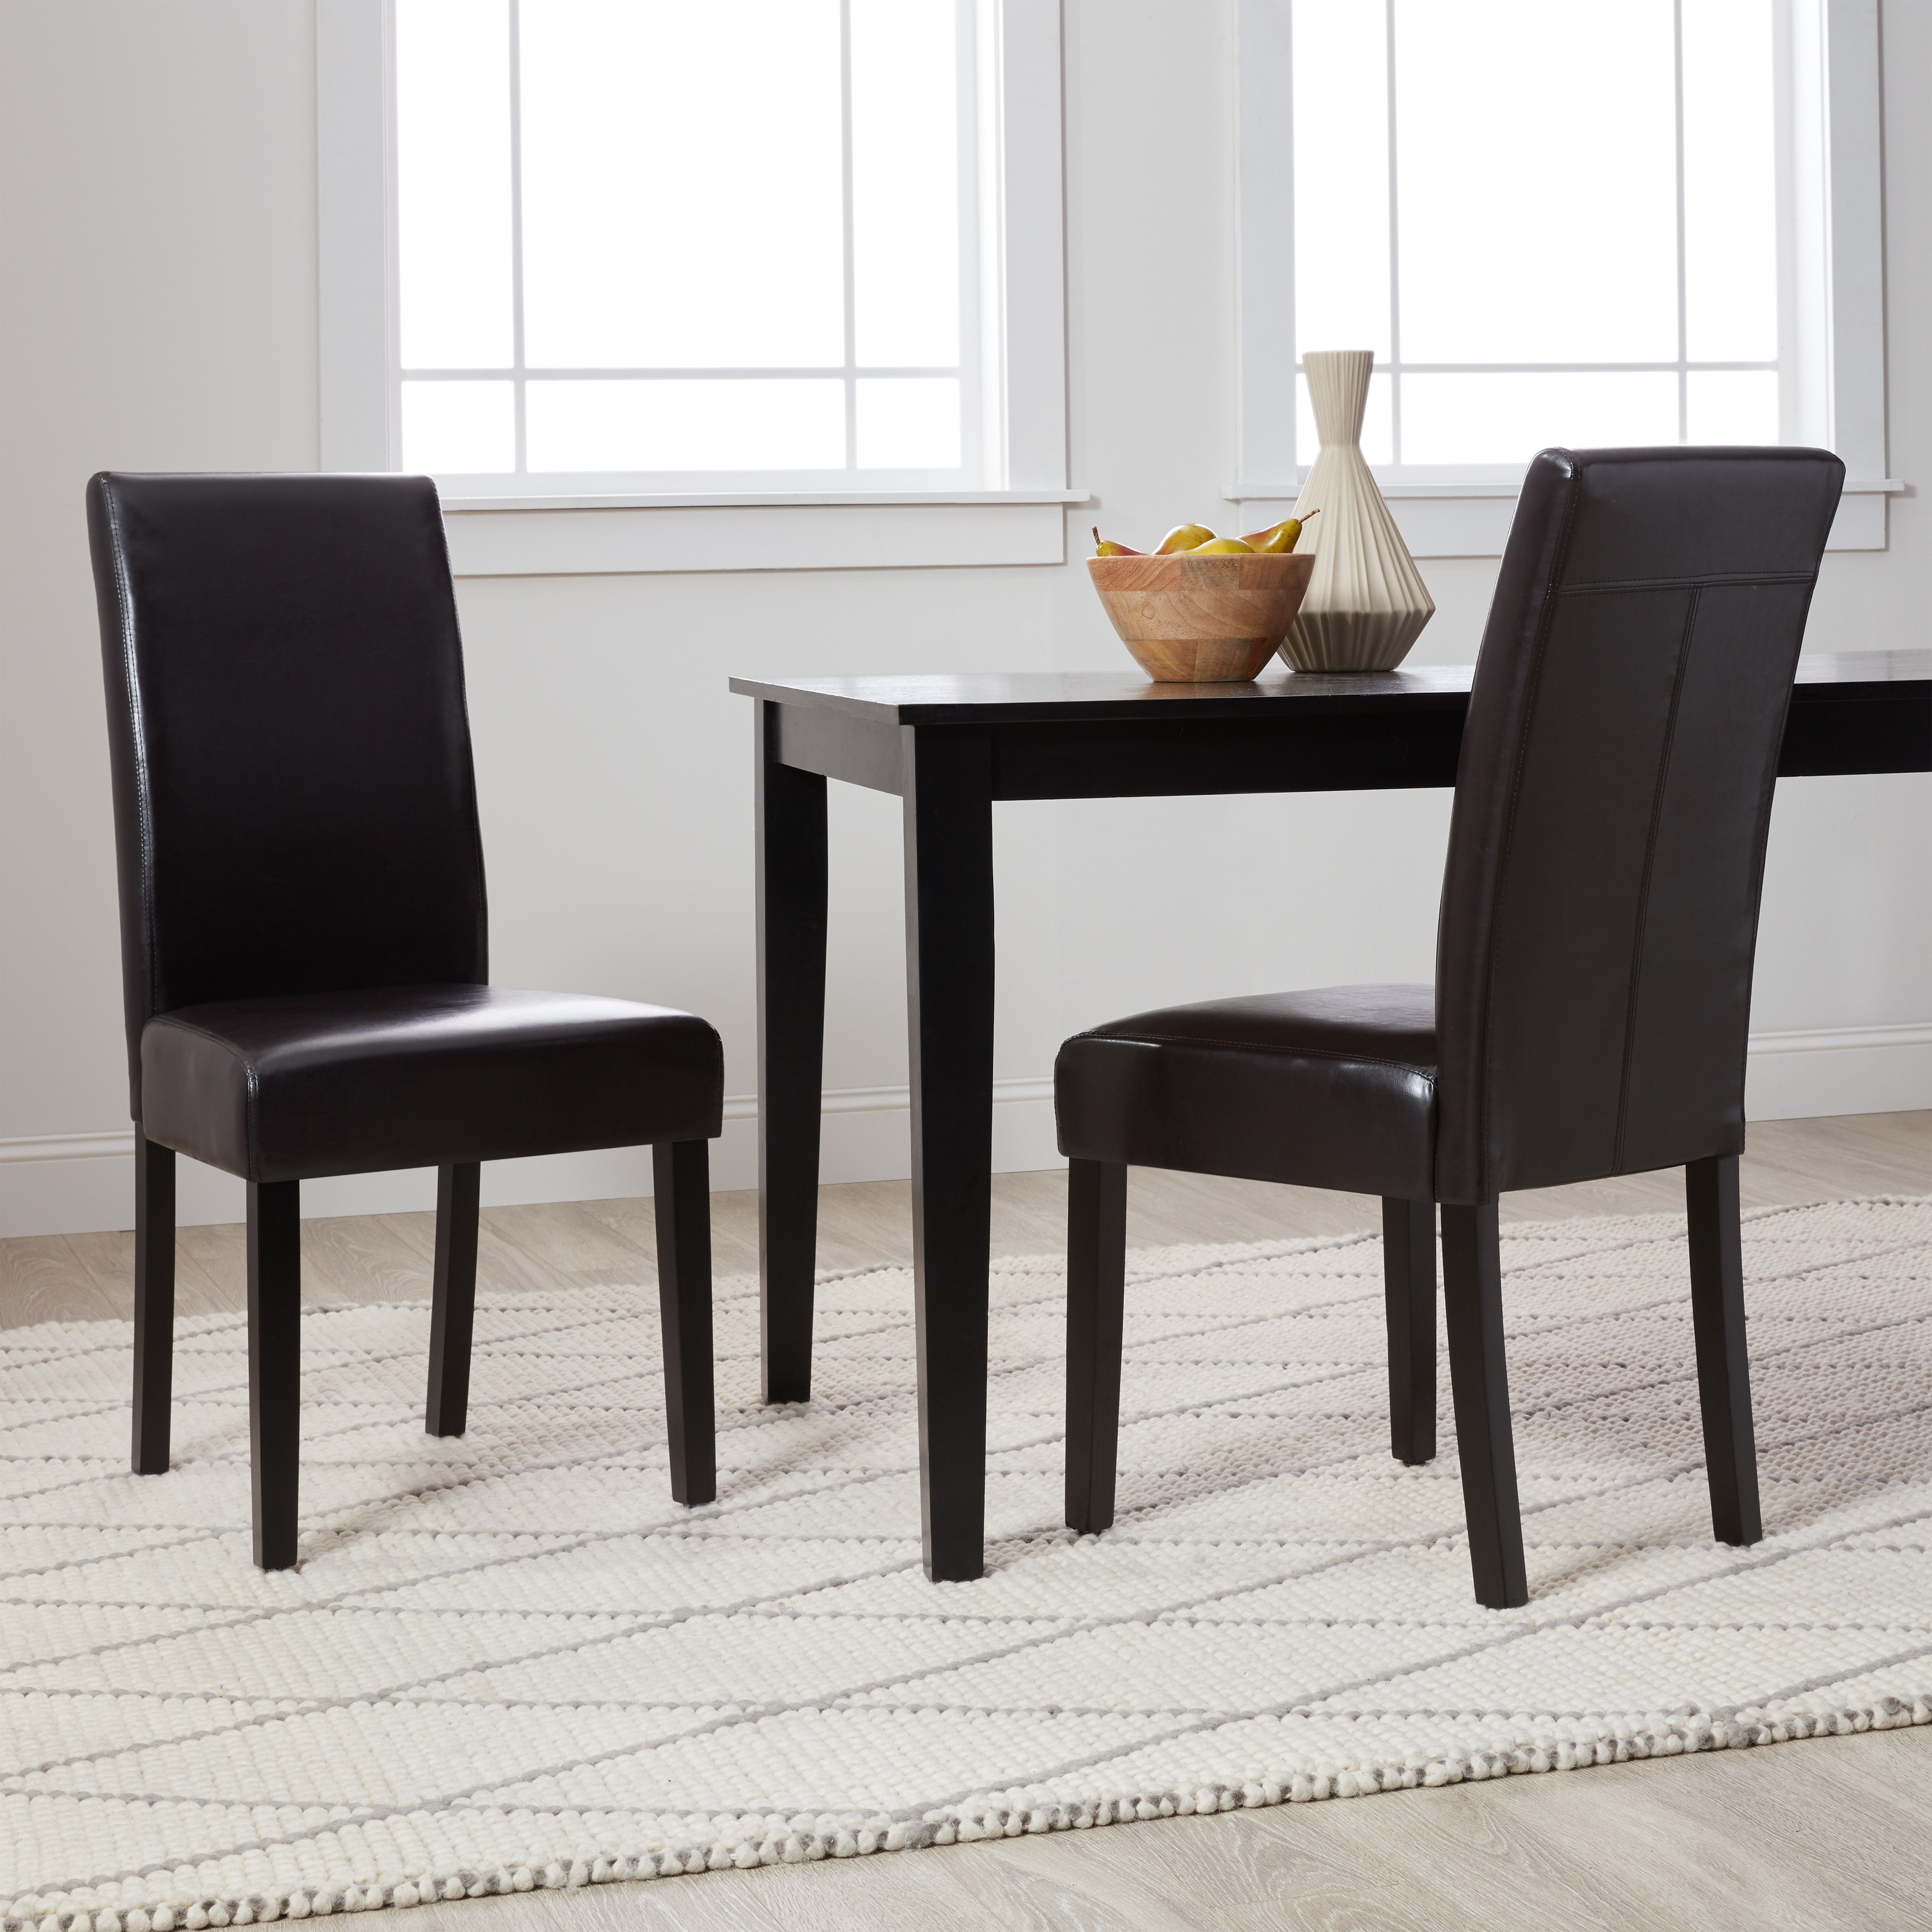 Dining Chair Set Of 2 Villa Faux Leather Dining Chairs Set Of 2